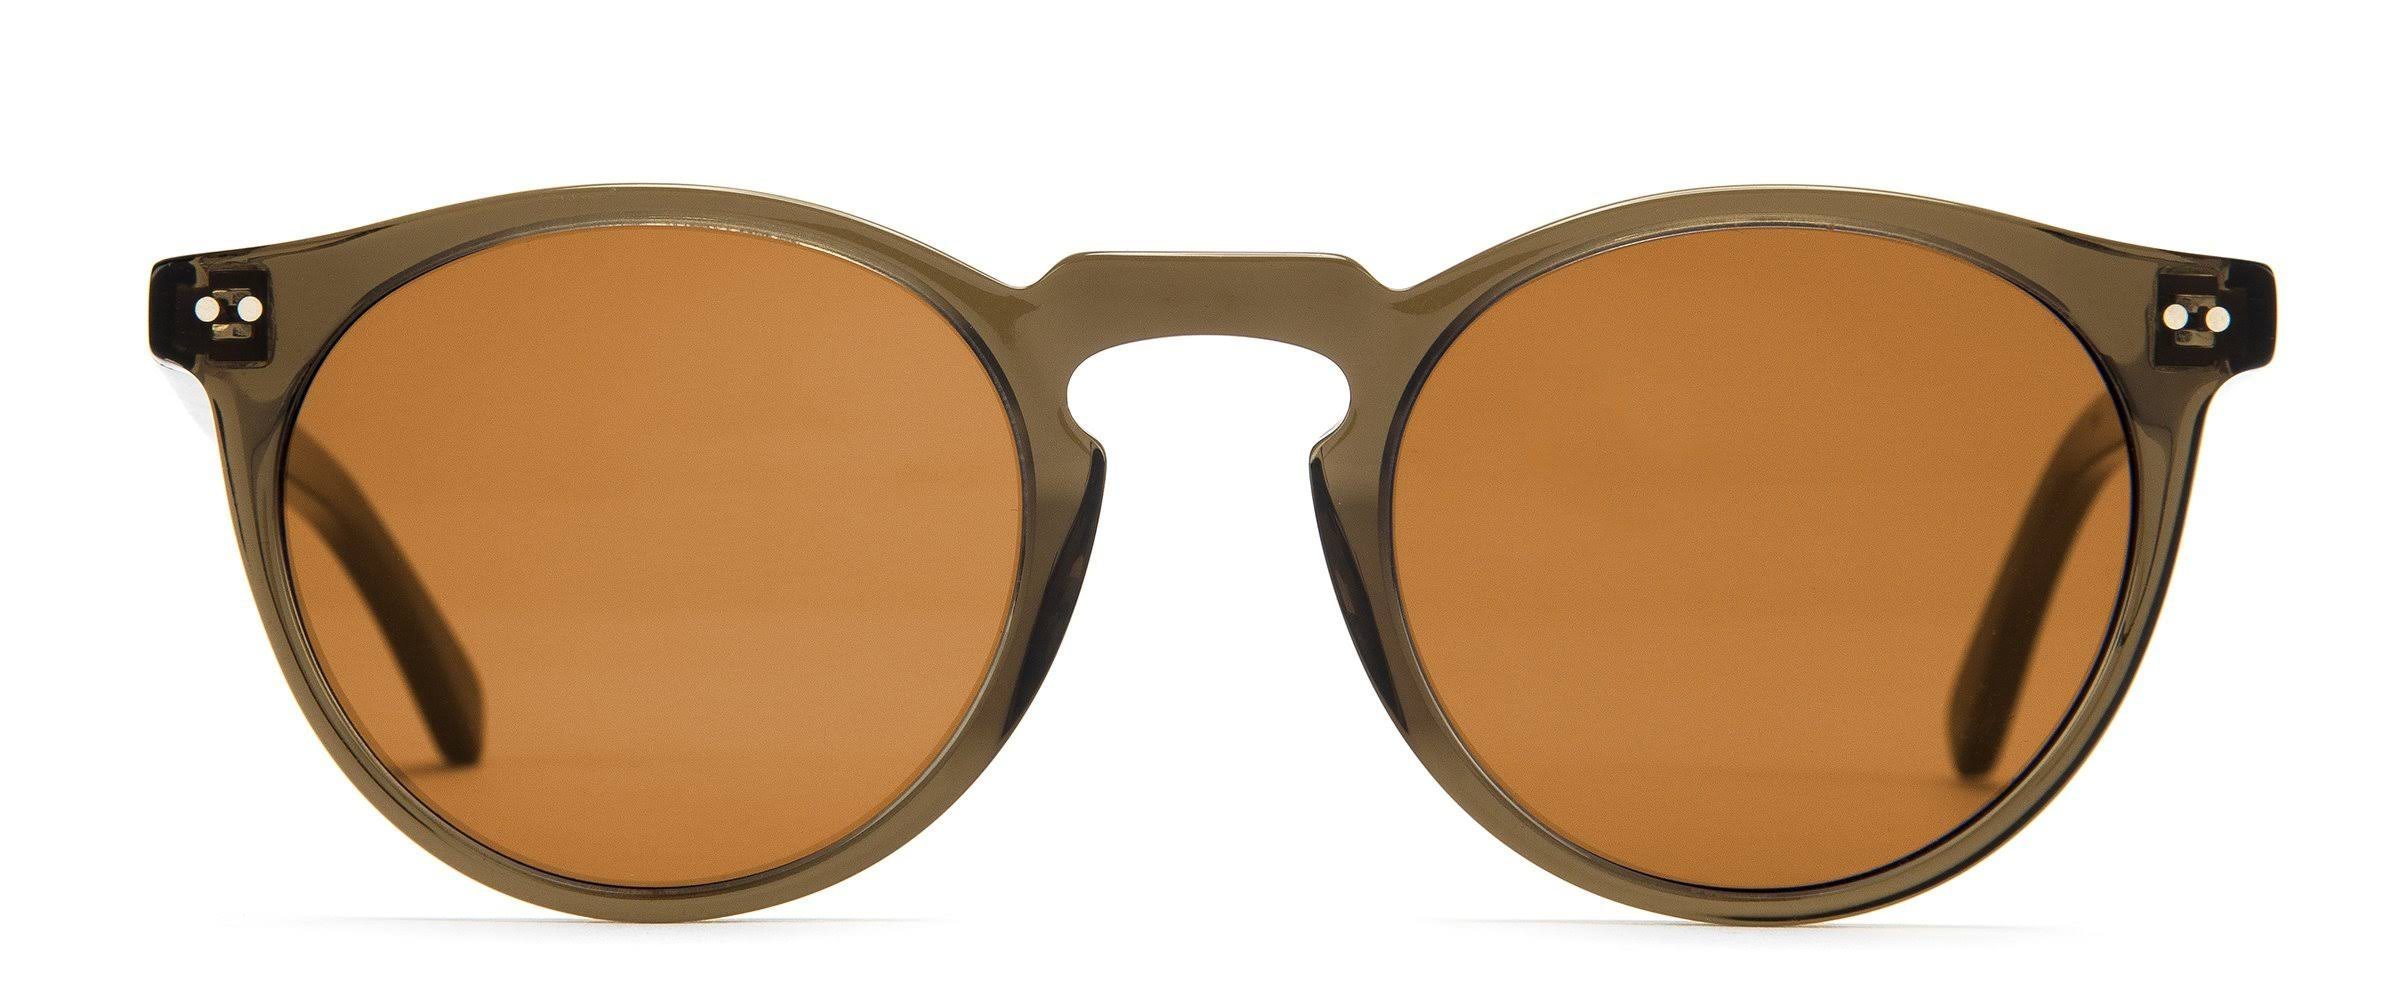 Otis Omar Mineral Glass Sunglasses - Trans Tobacco Brown Polarized